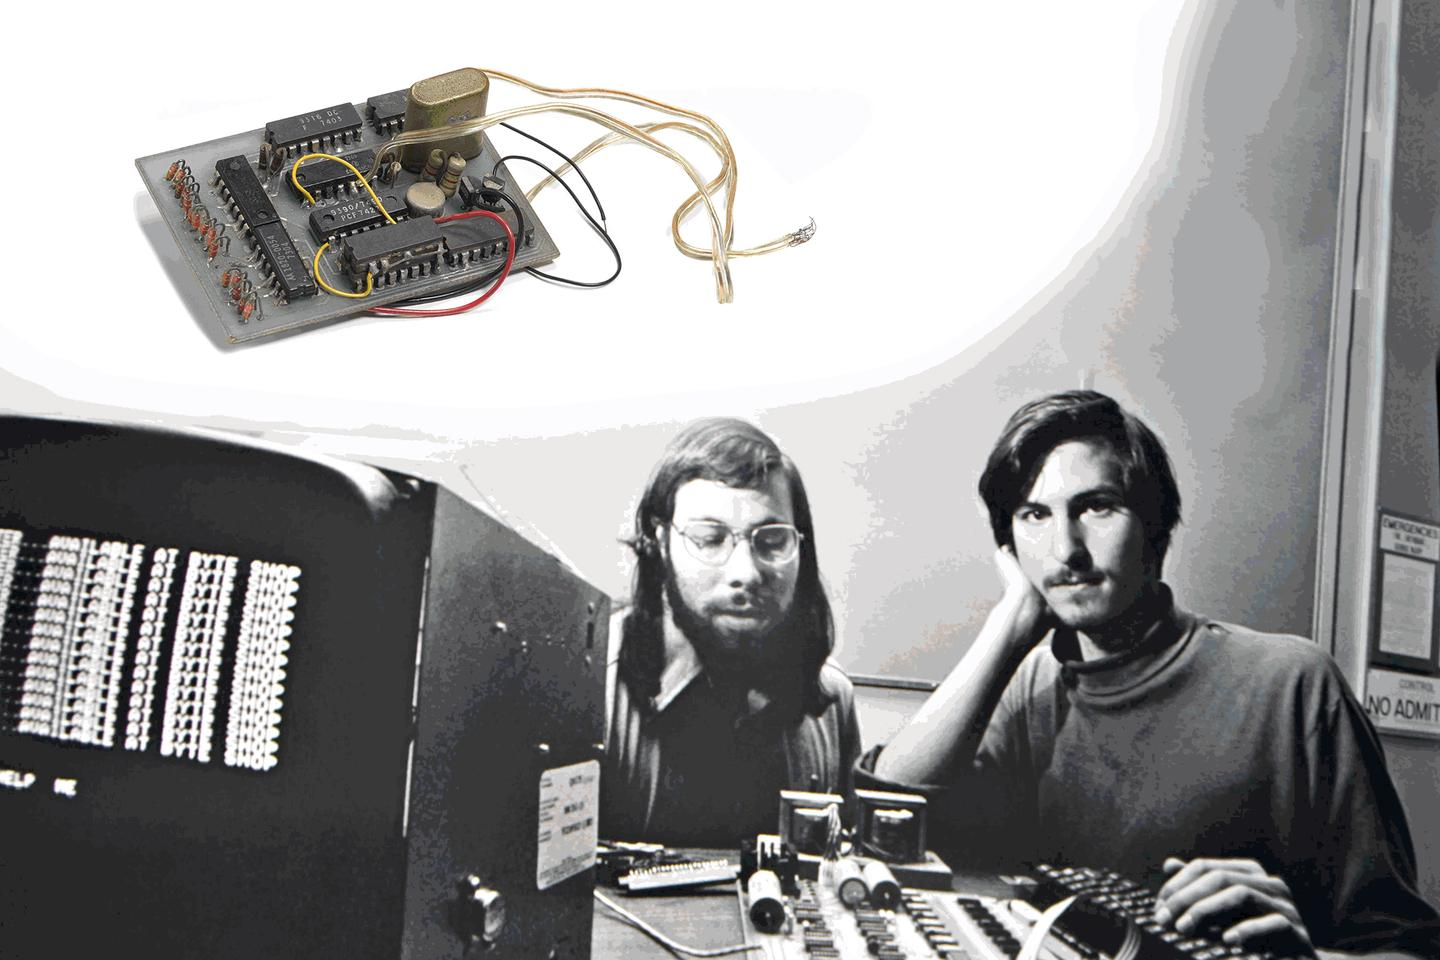 The blue box was the first product collaboration between Apple founders Wozniak and Jobs sold to friends at Berkeley in 1972-73